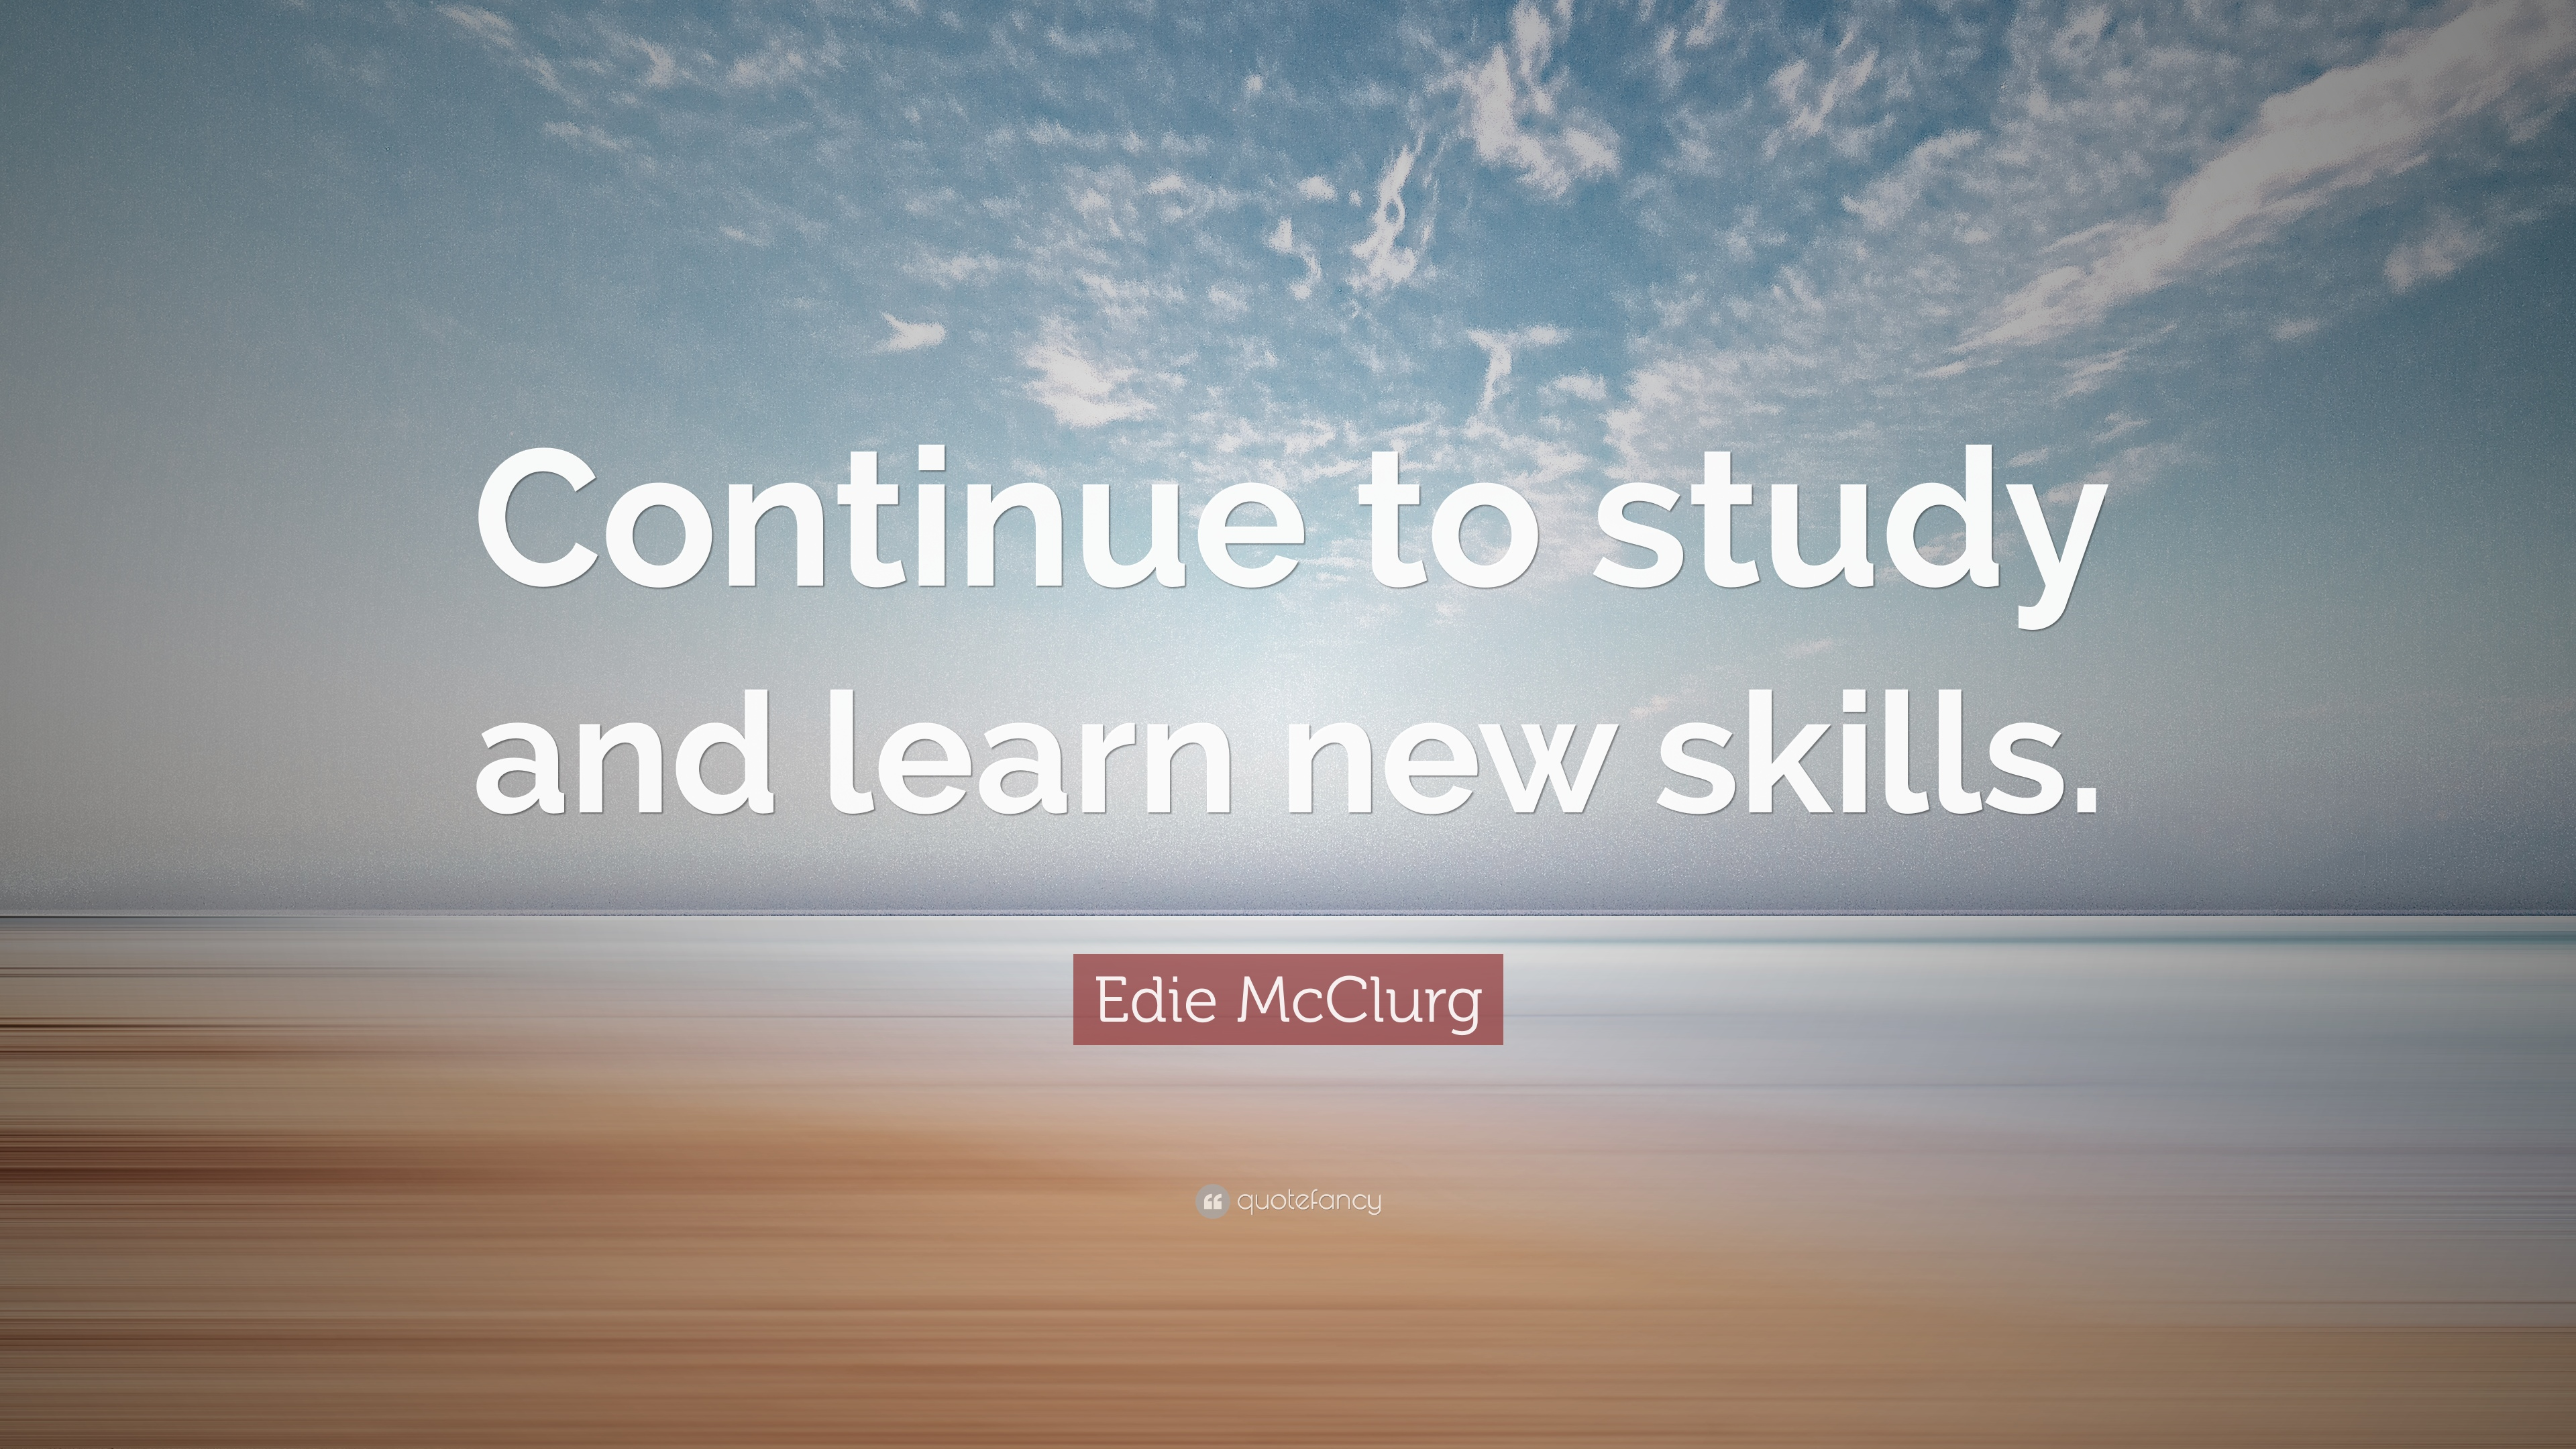 edie mcclurg quote continue to study and learn new skills  edie mcclurg quote continue to study and learn new skills